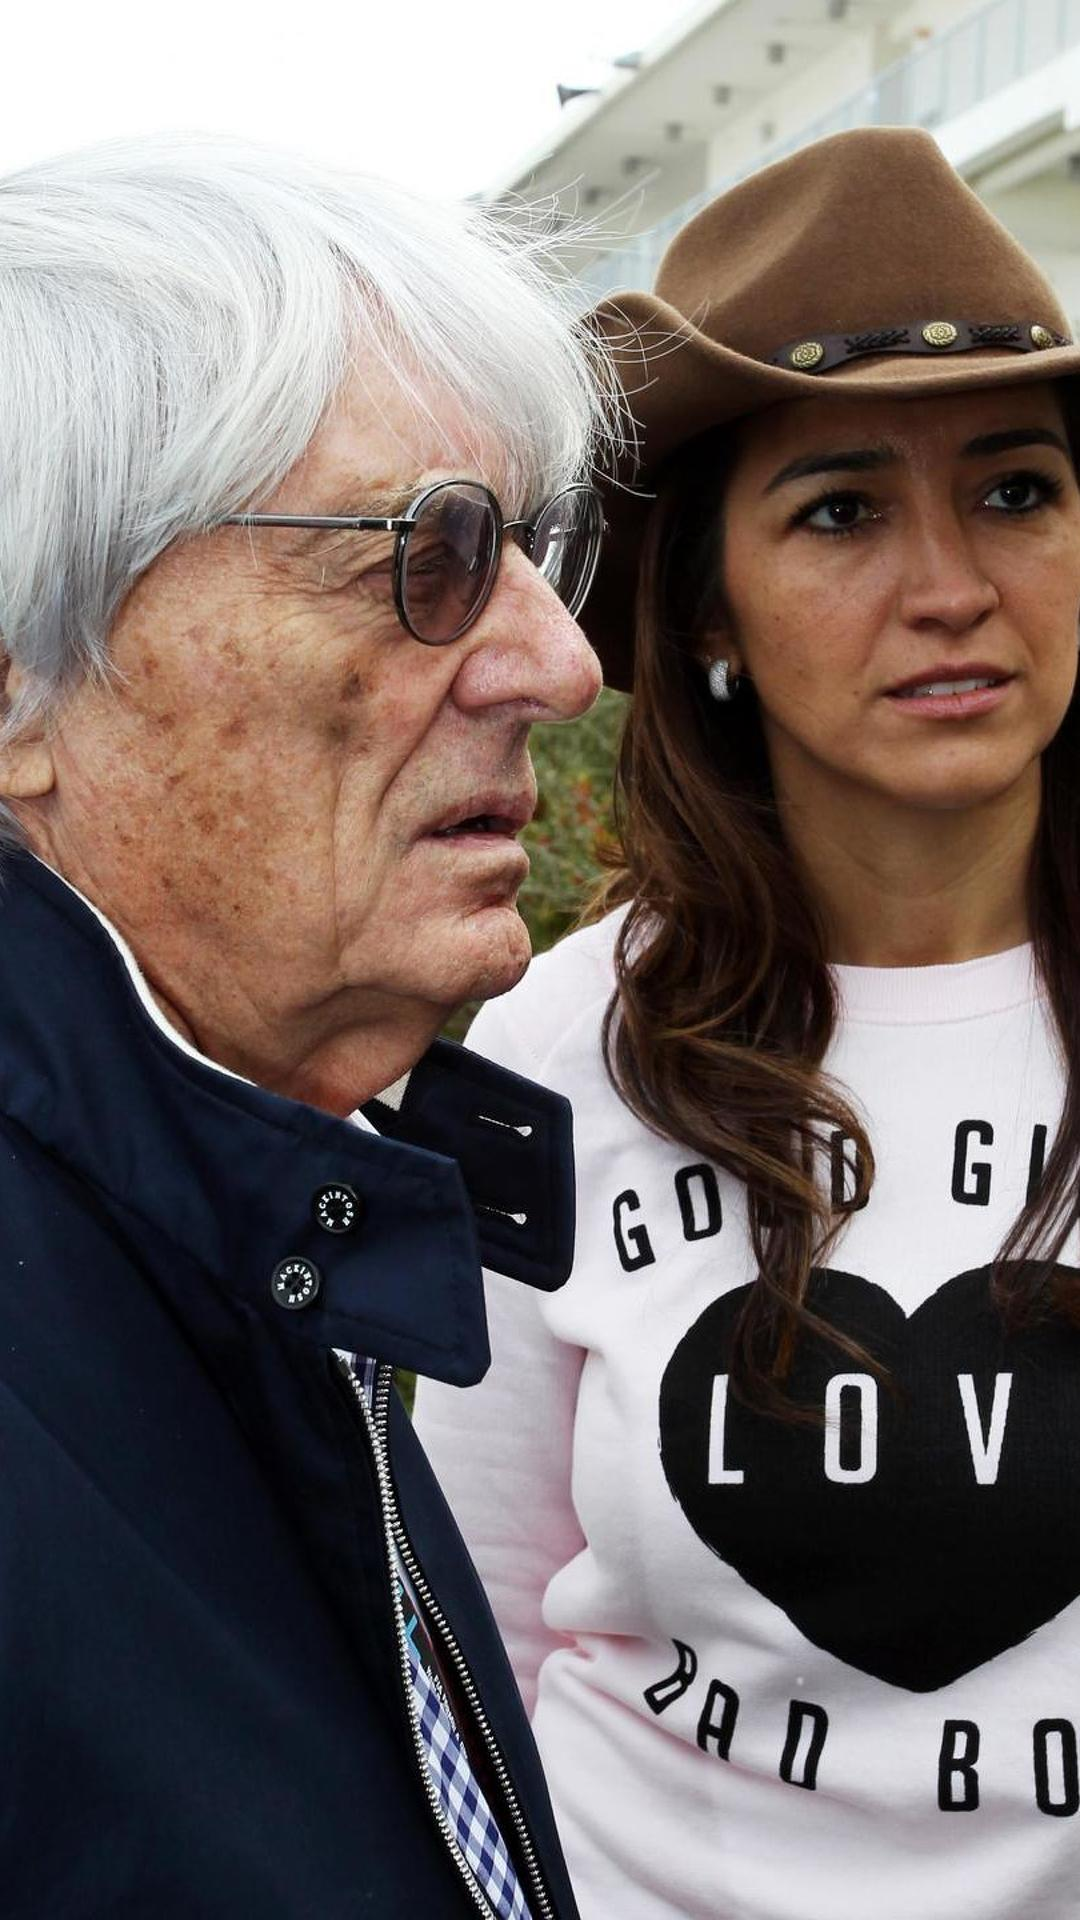 Wife Fabiana 'wants a baby' - Ecclestone